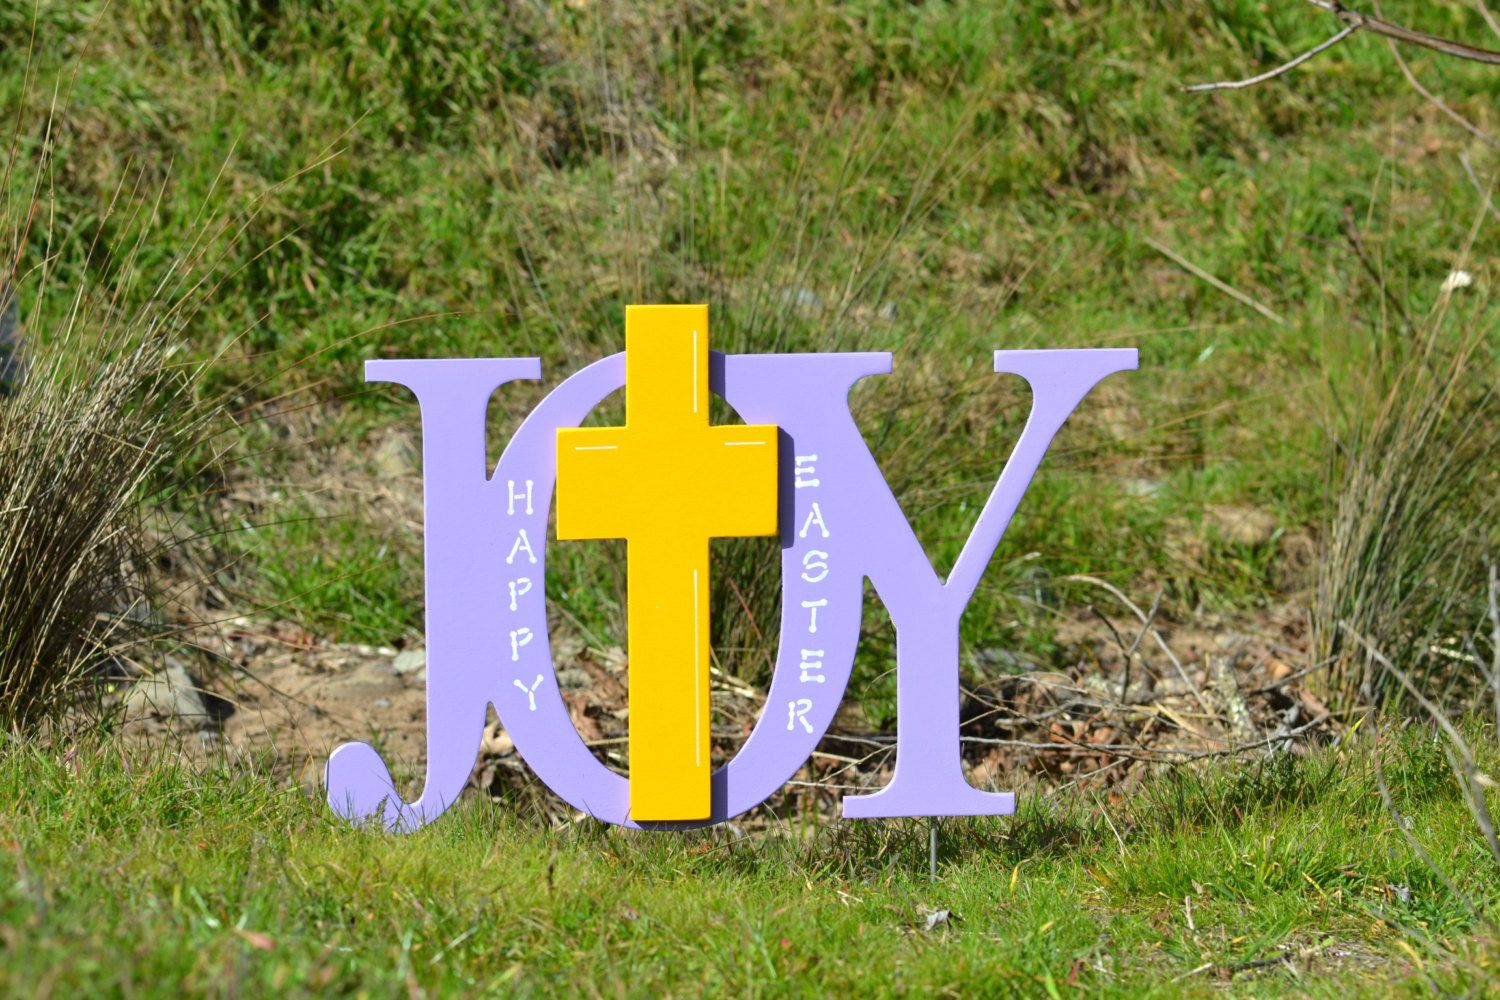 Religious easter yard decorations - Easter Religious Outdoor Yard Decoration Wood Sign Joy With Cross Pinterest Nice Yard Decorations And The O Jays